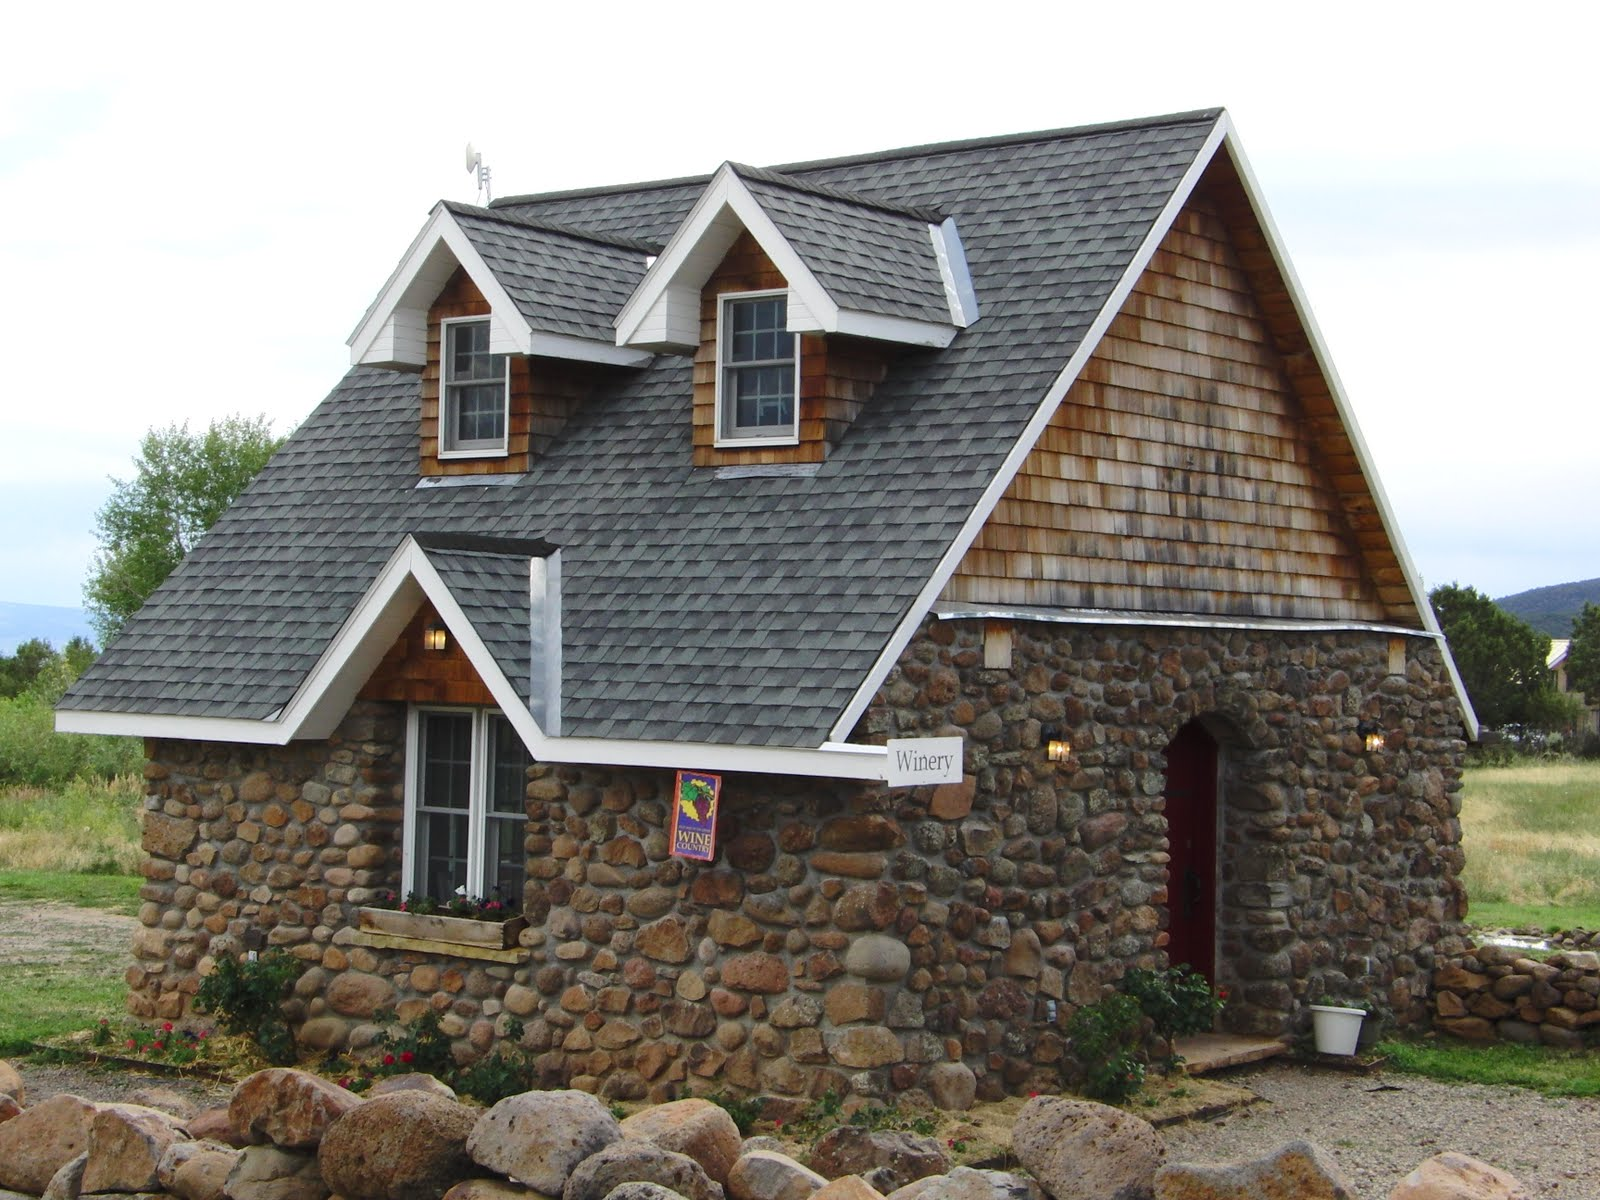 Smart placement small stone cottages ideas building for Small stone cottage